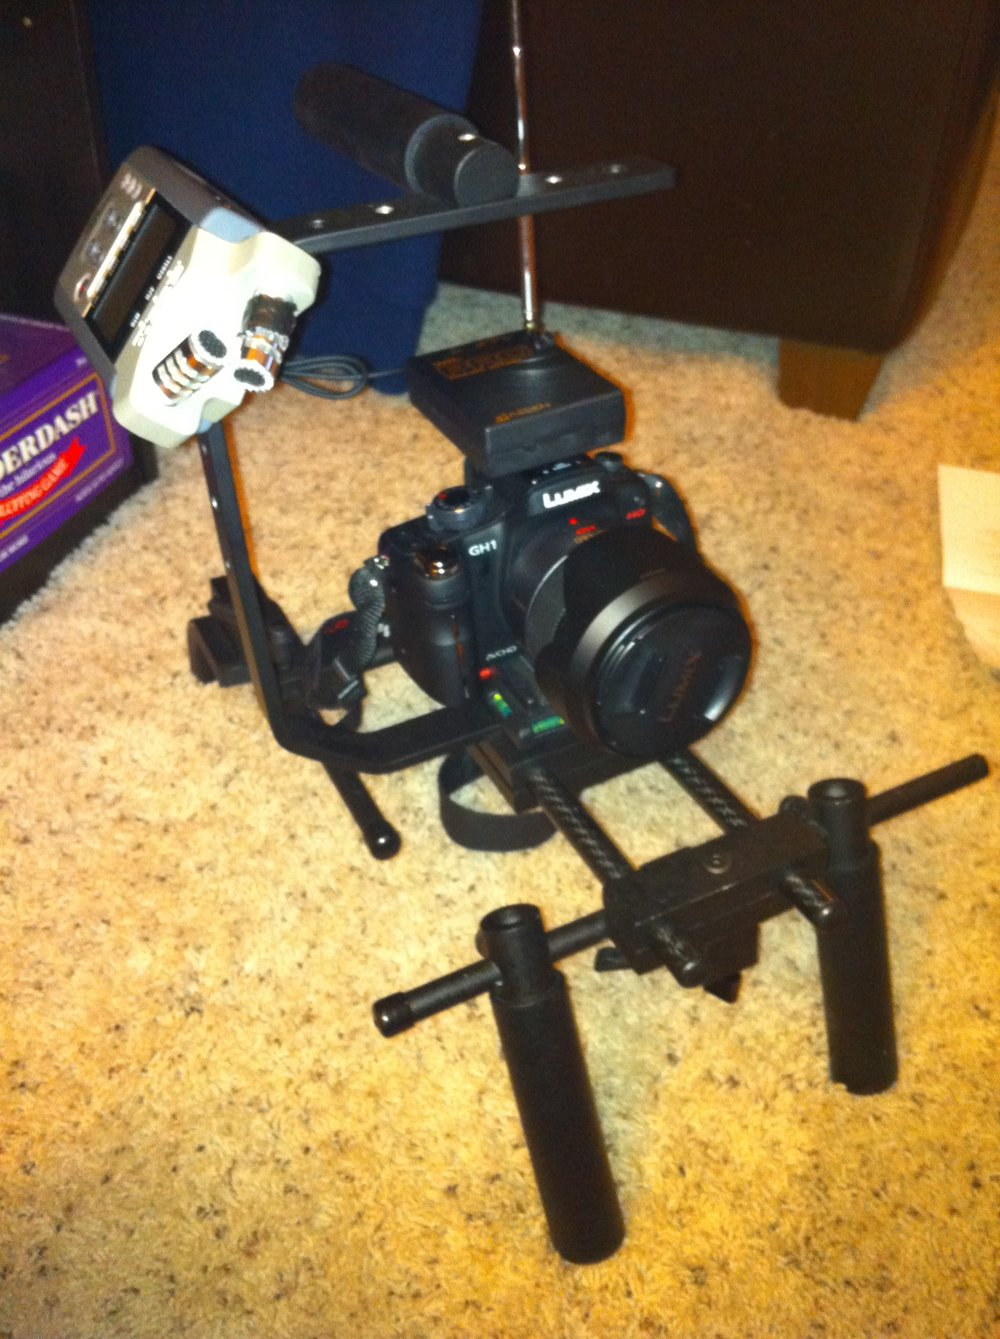 Nick found this photo from 2010, when he and I shared a Panasonic GH1 camera, 14-140mm lens, Zoom H4n audio recorder, ULTRAcompact shoulder rig, and Azden wireless mic system.